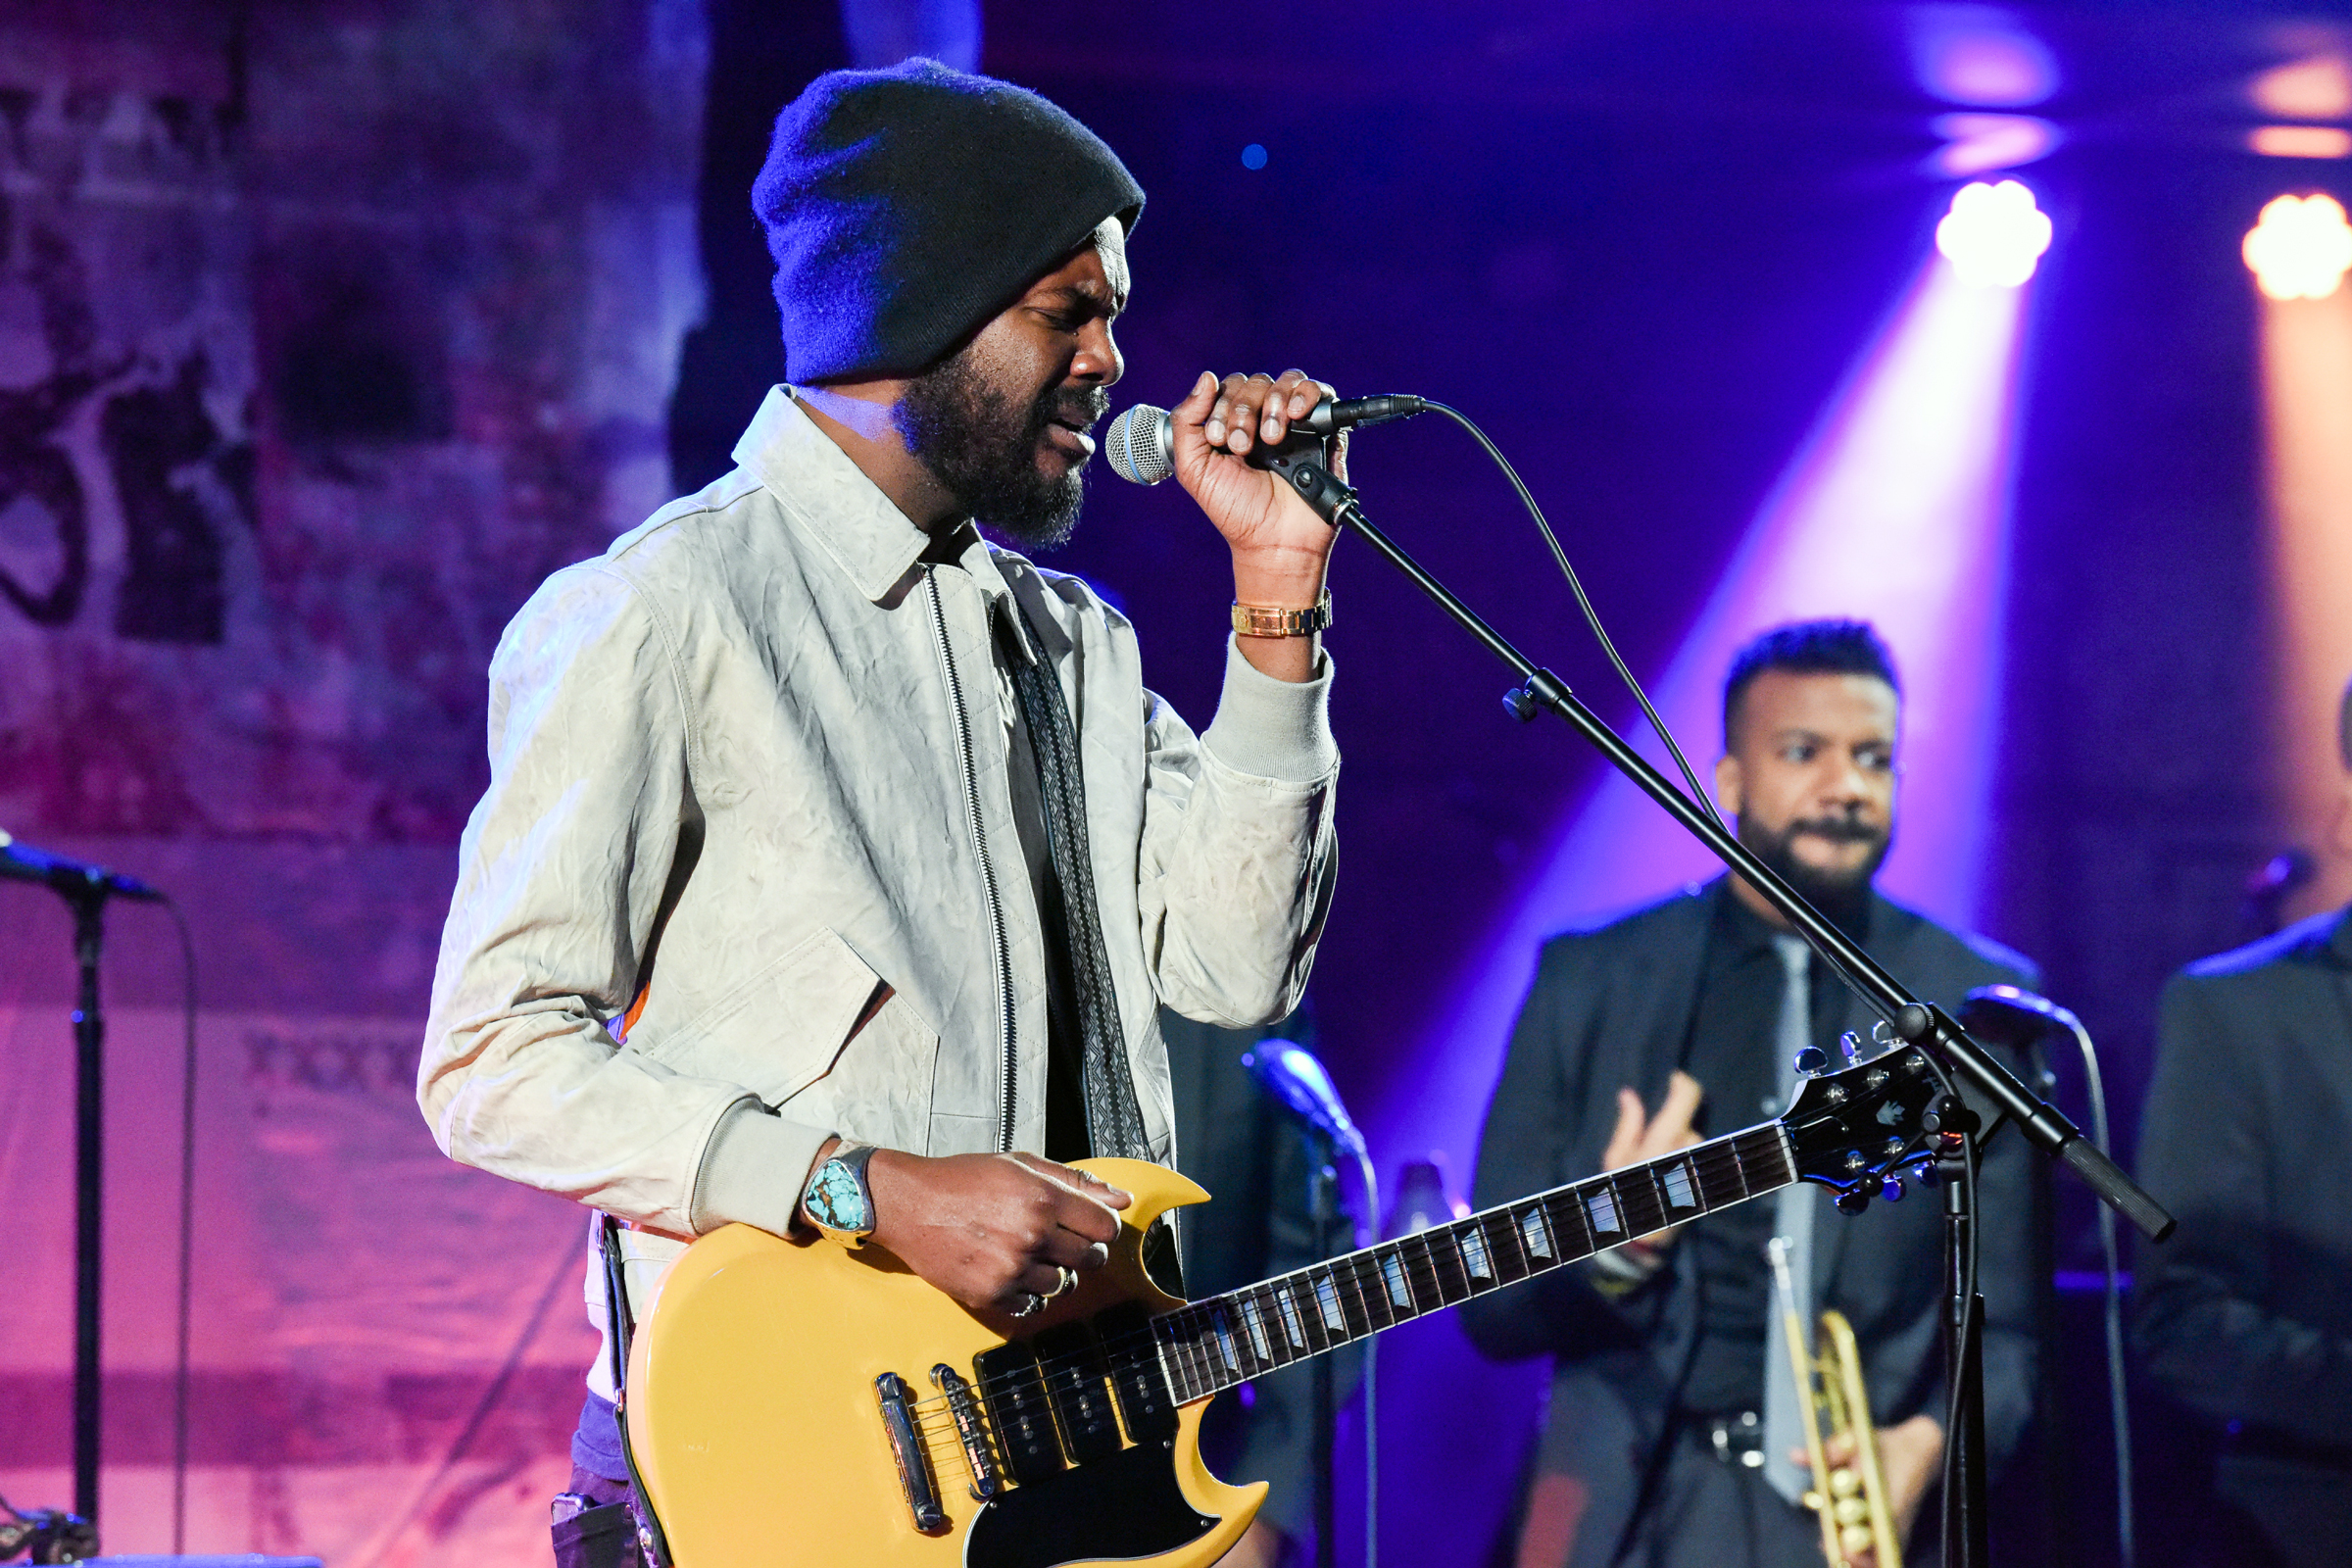 Watch Gary Clark Jr  Play New Song 'This Land' on 'Colbert